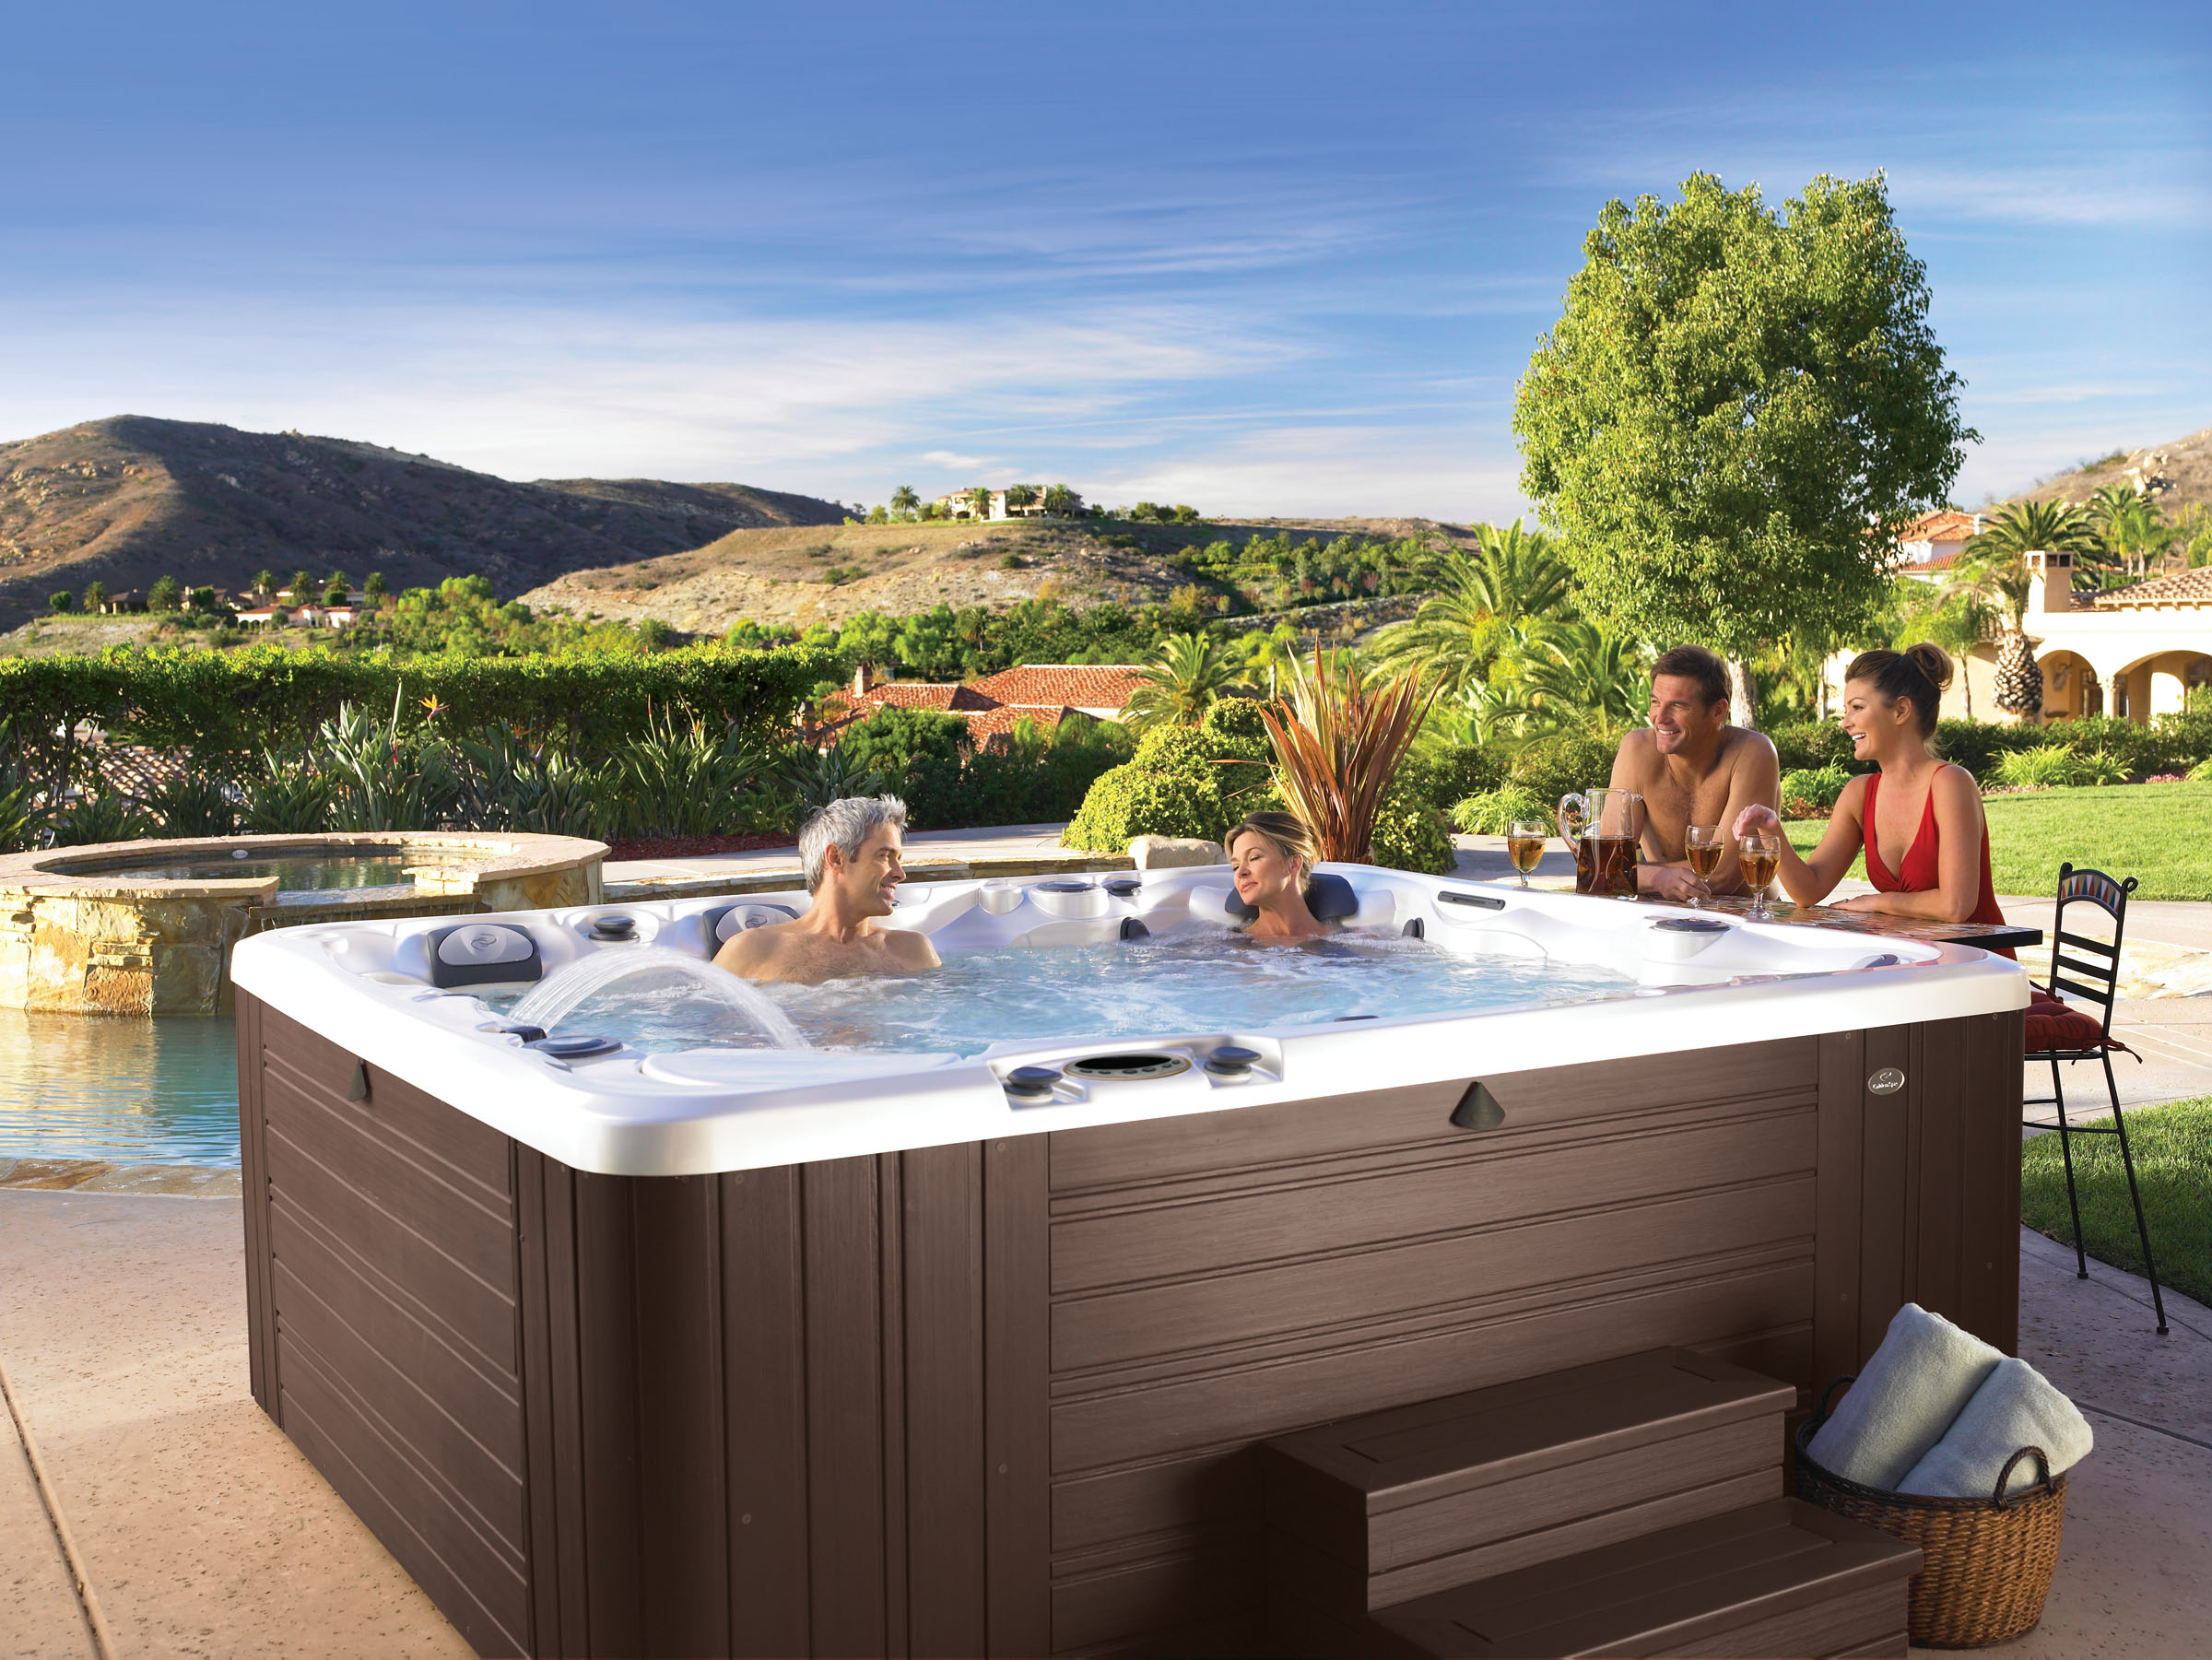 where to buy a hot tub in dallas shopper 39 s guide. Black Bedroom Furniture Sets. Home Design Ideas